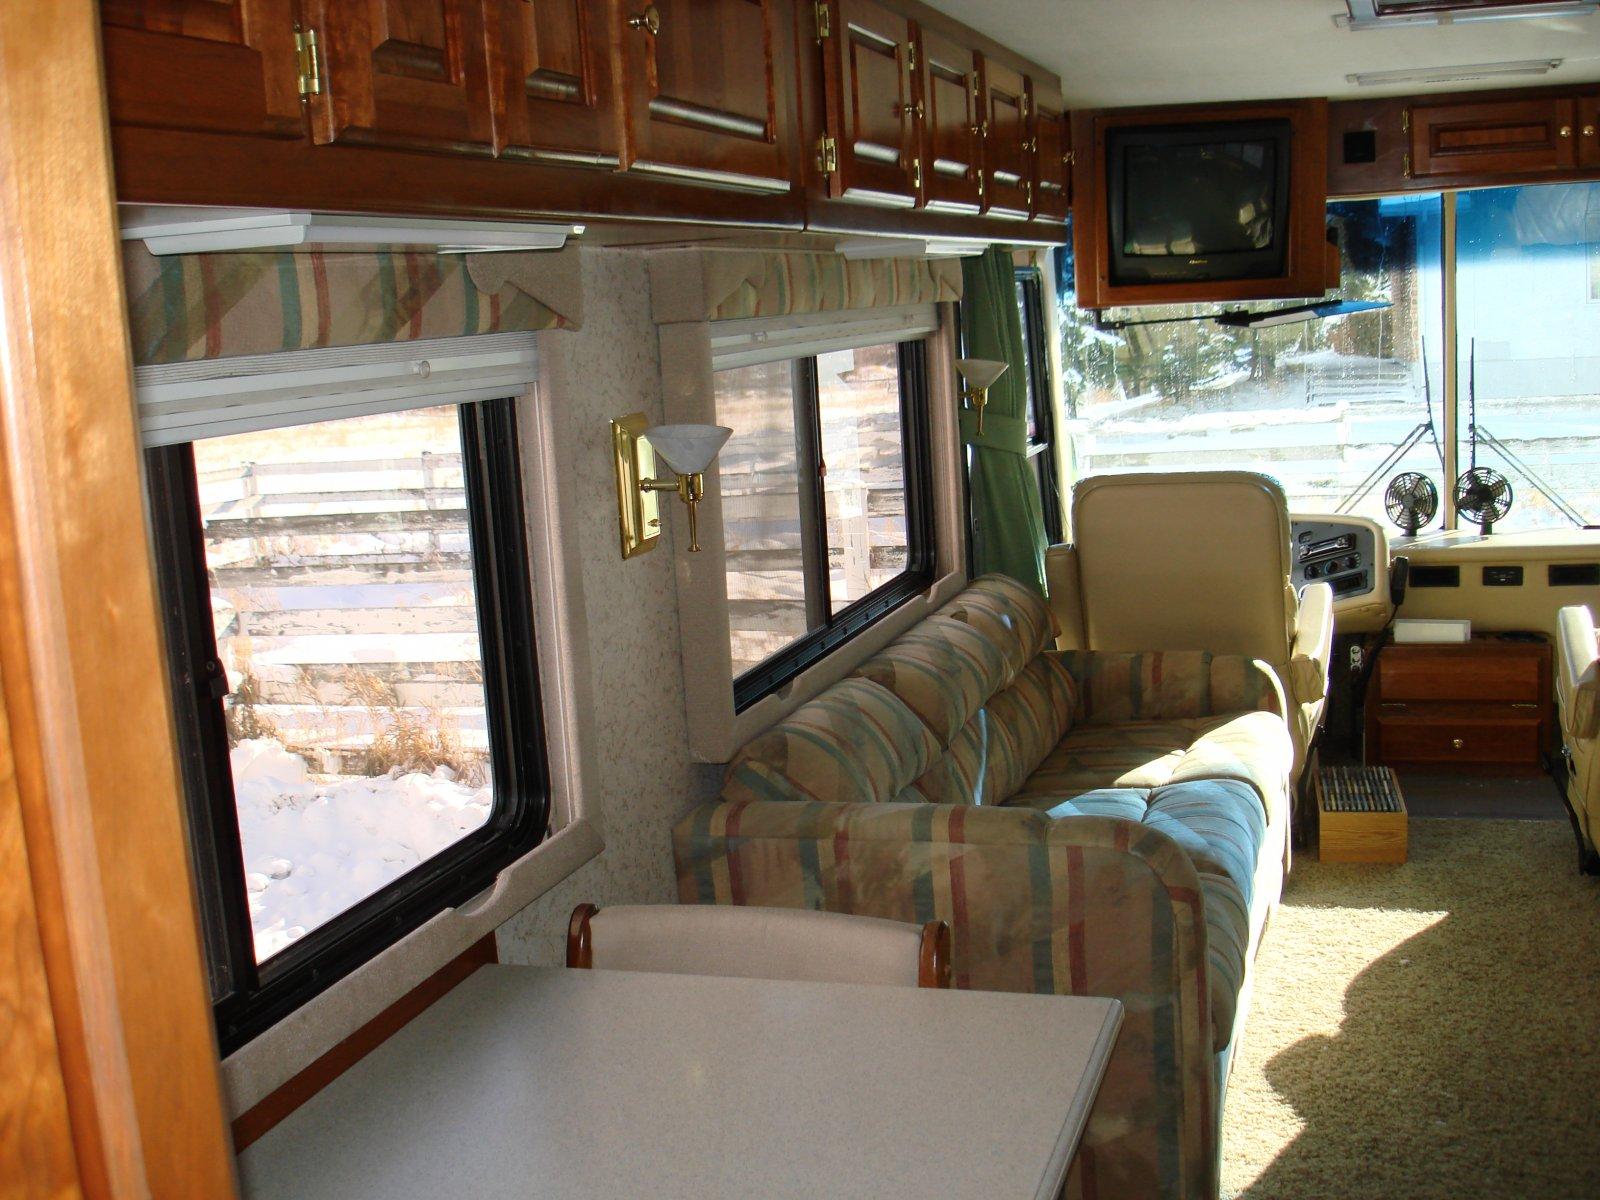 Click image for larger version  Name:motorhome 019.jpg Views:77 Size:299.5 KB ID:28400